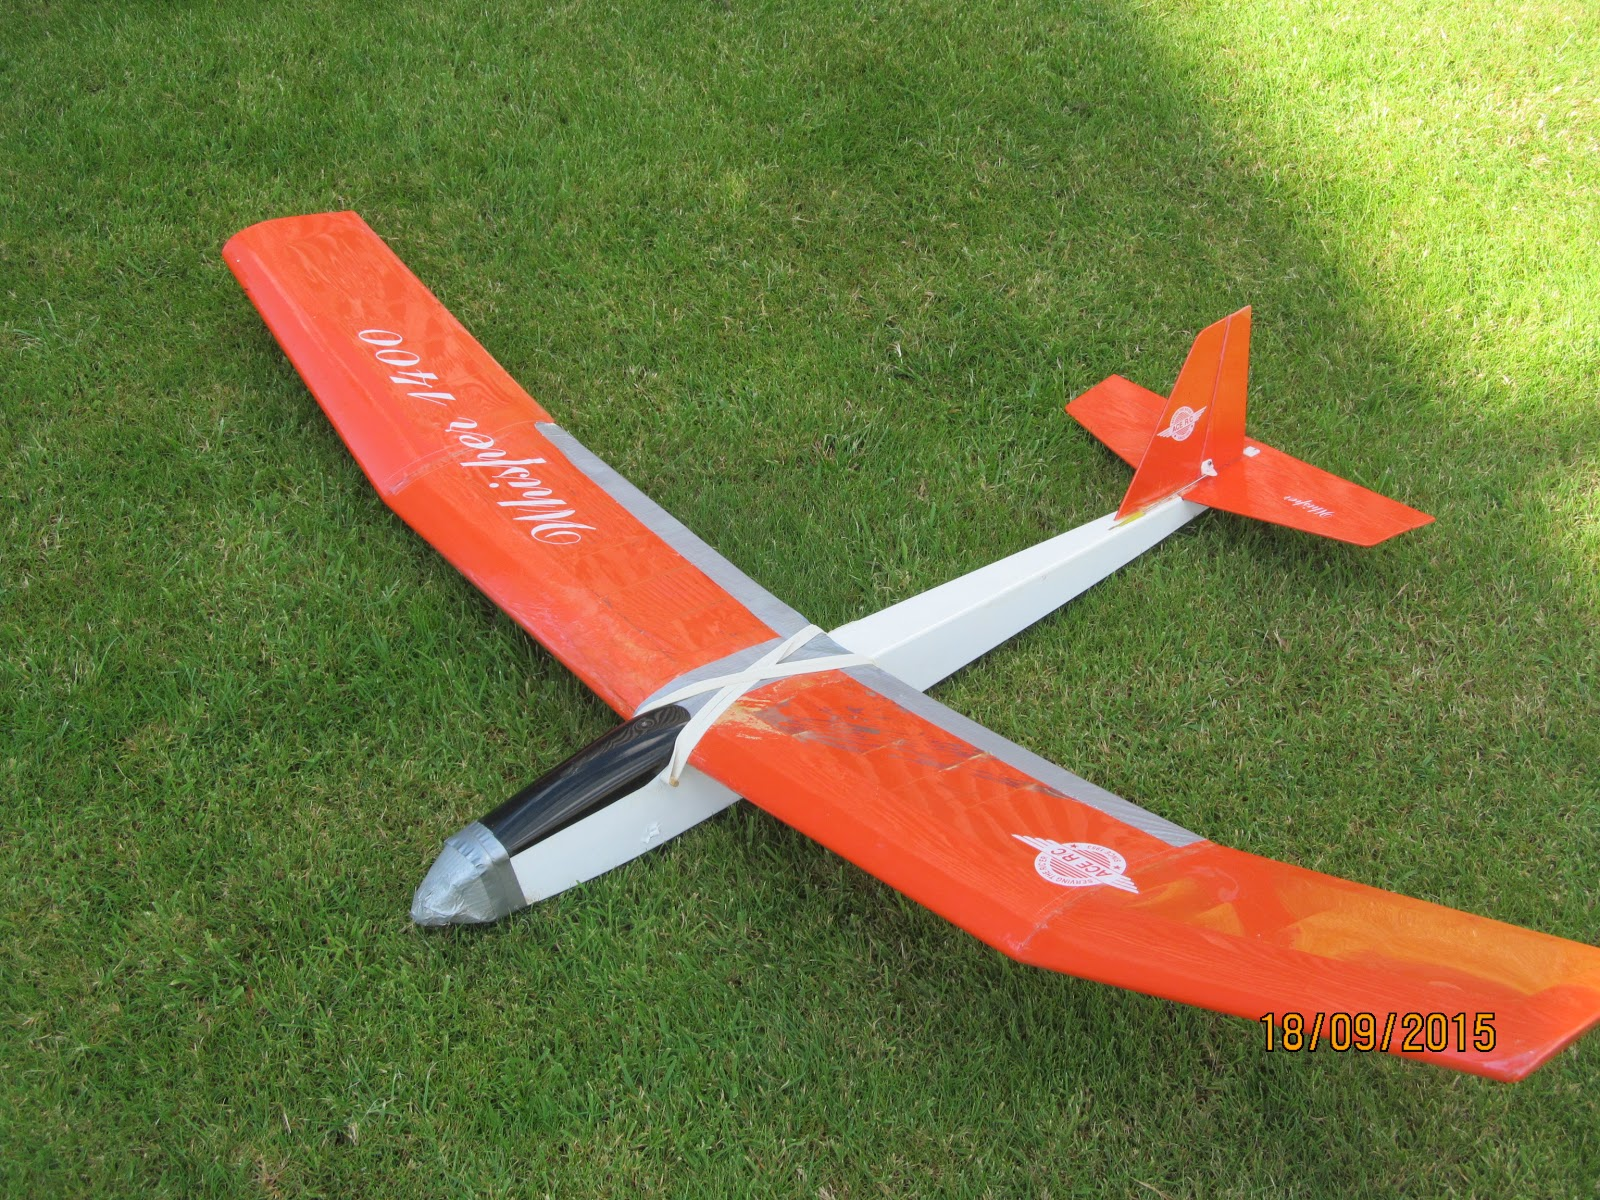 Slope Soaring Sussex: Plan Built Gliders Kits